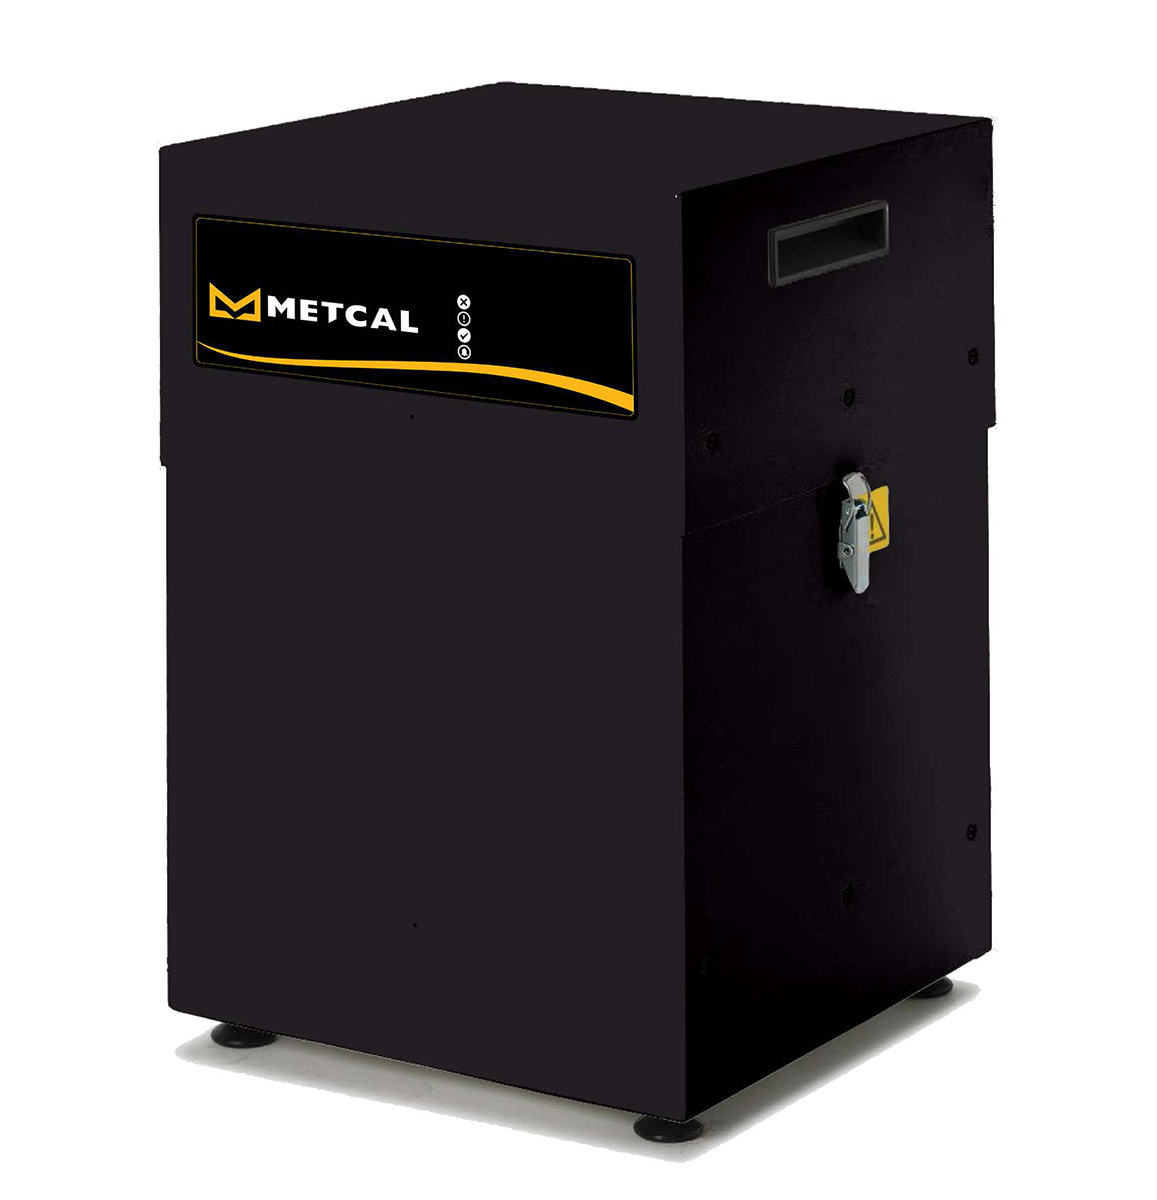 Metcal Volume Fume Extraction System